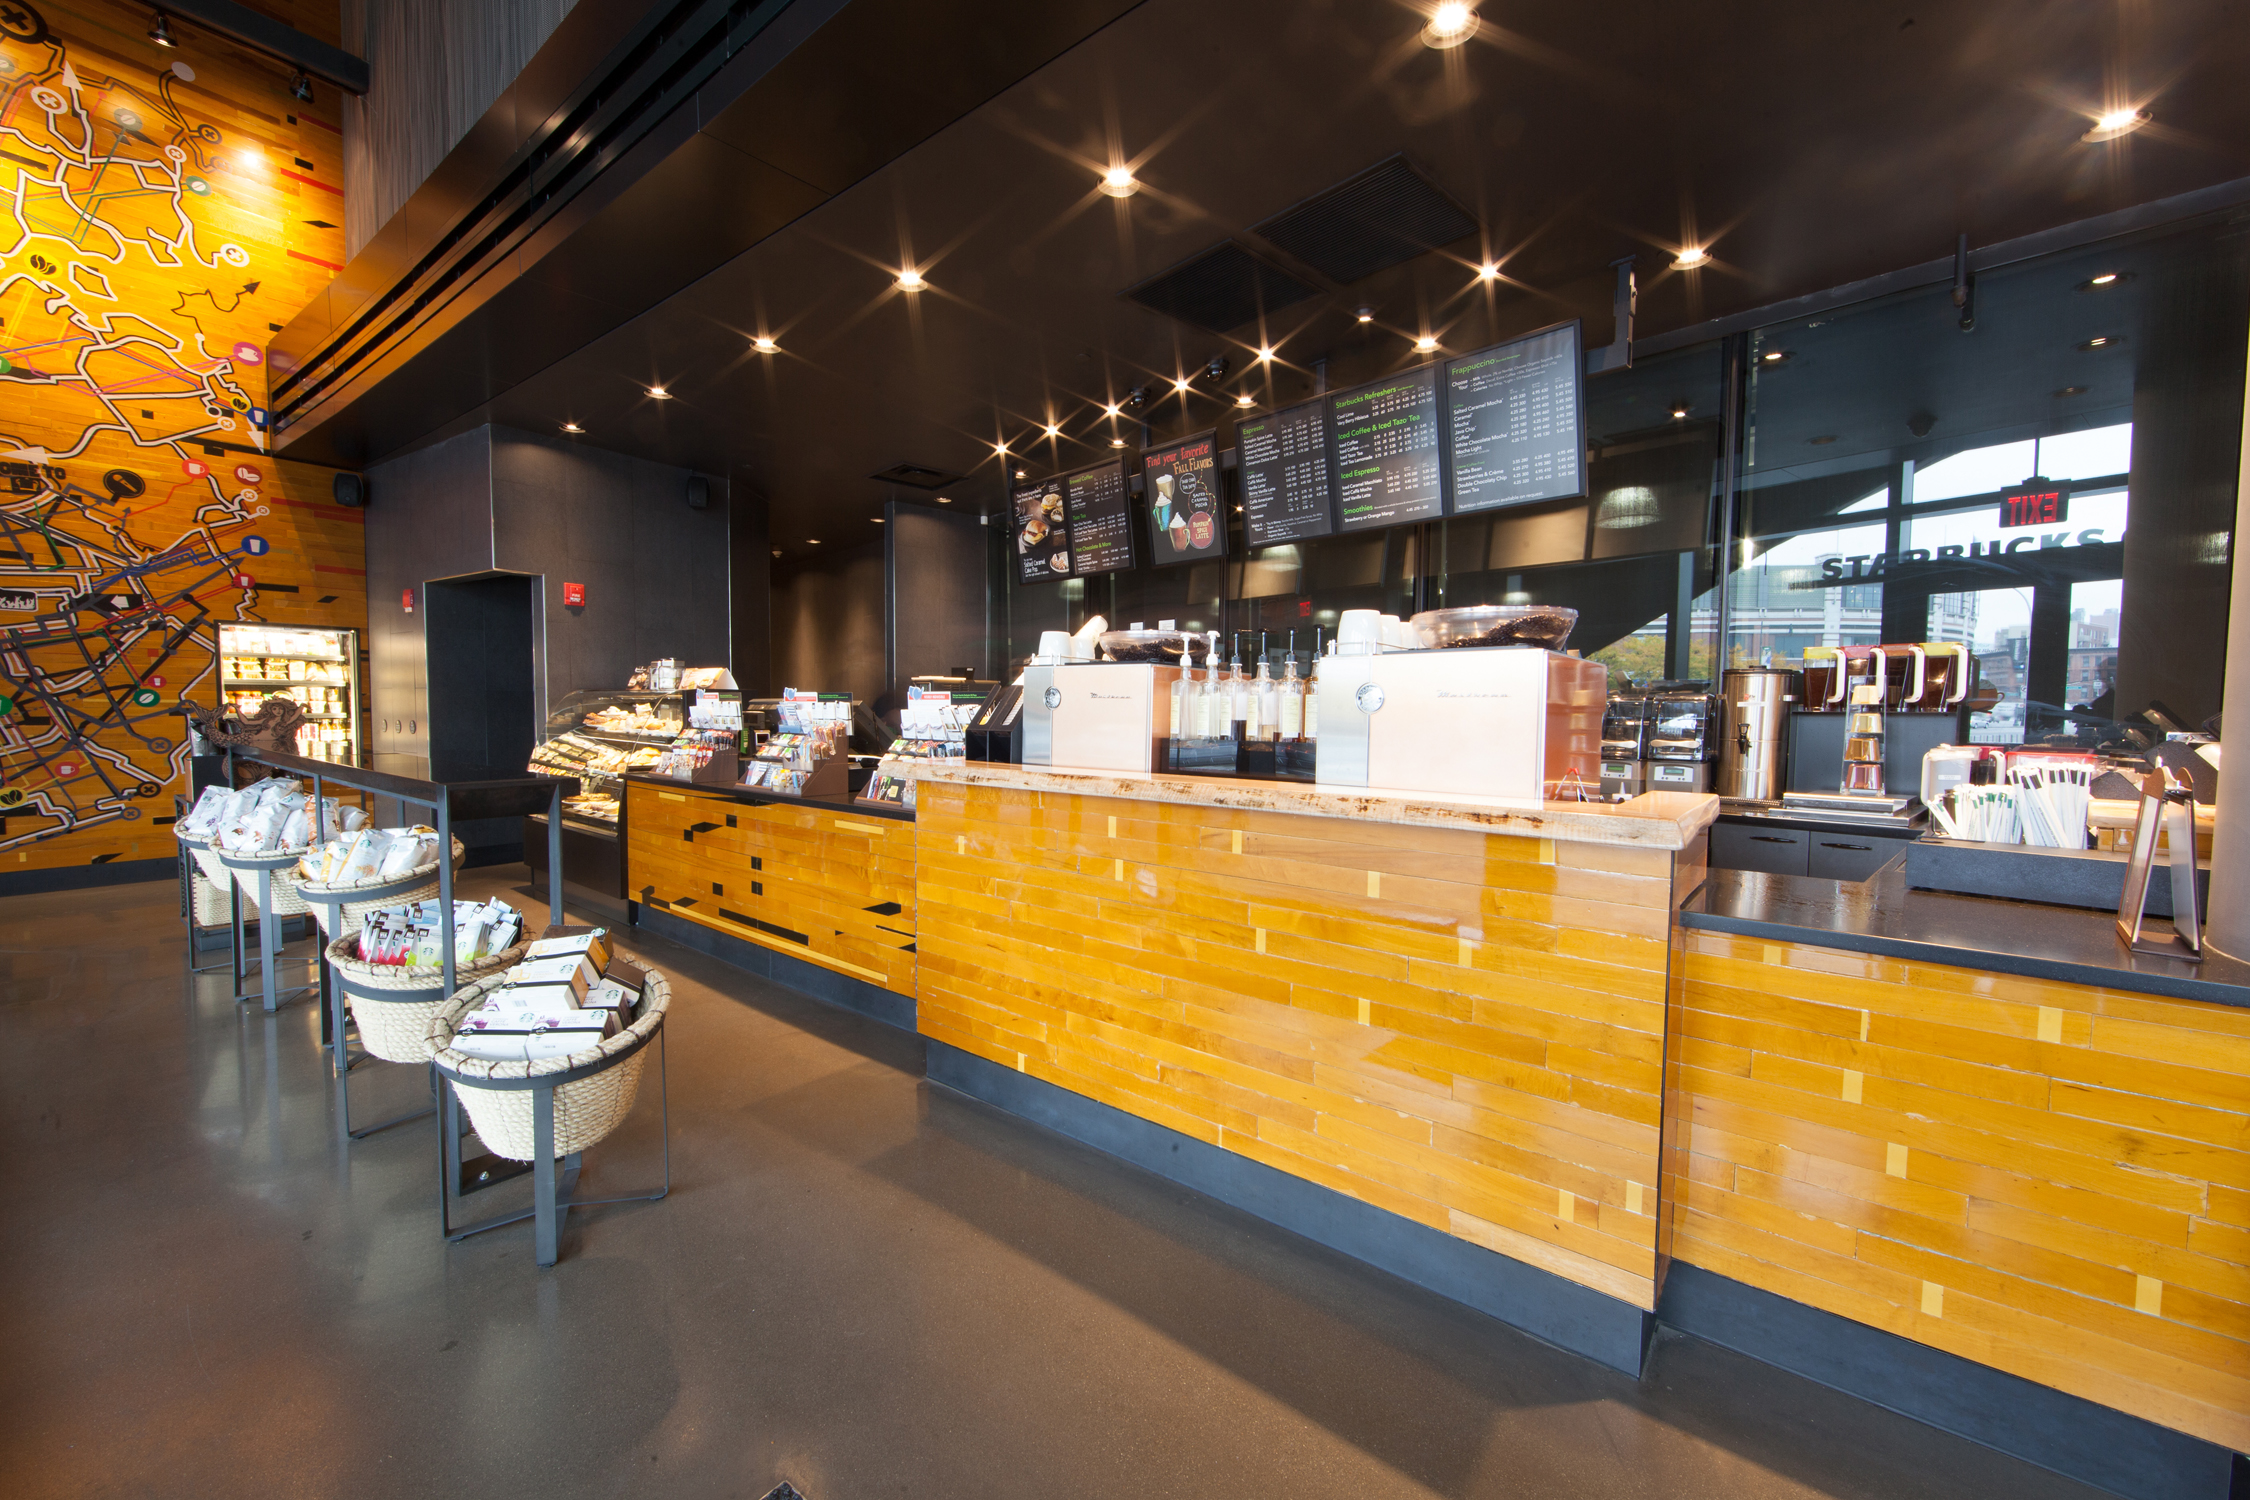 Starbucks Barclays Center Brooklyn By Brian Guze At